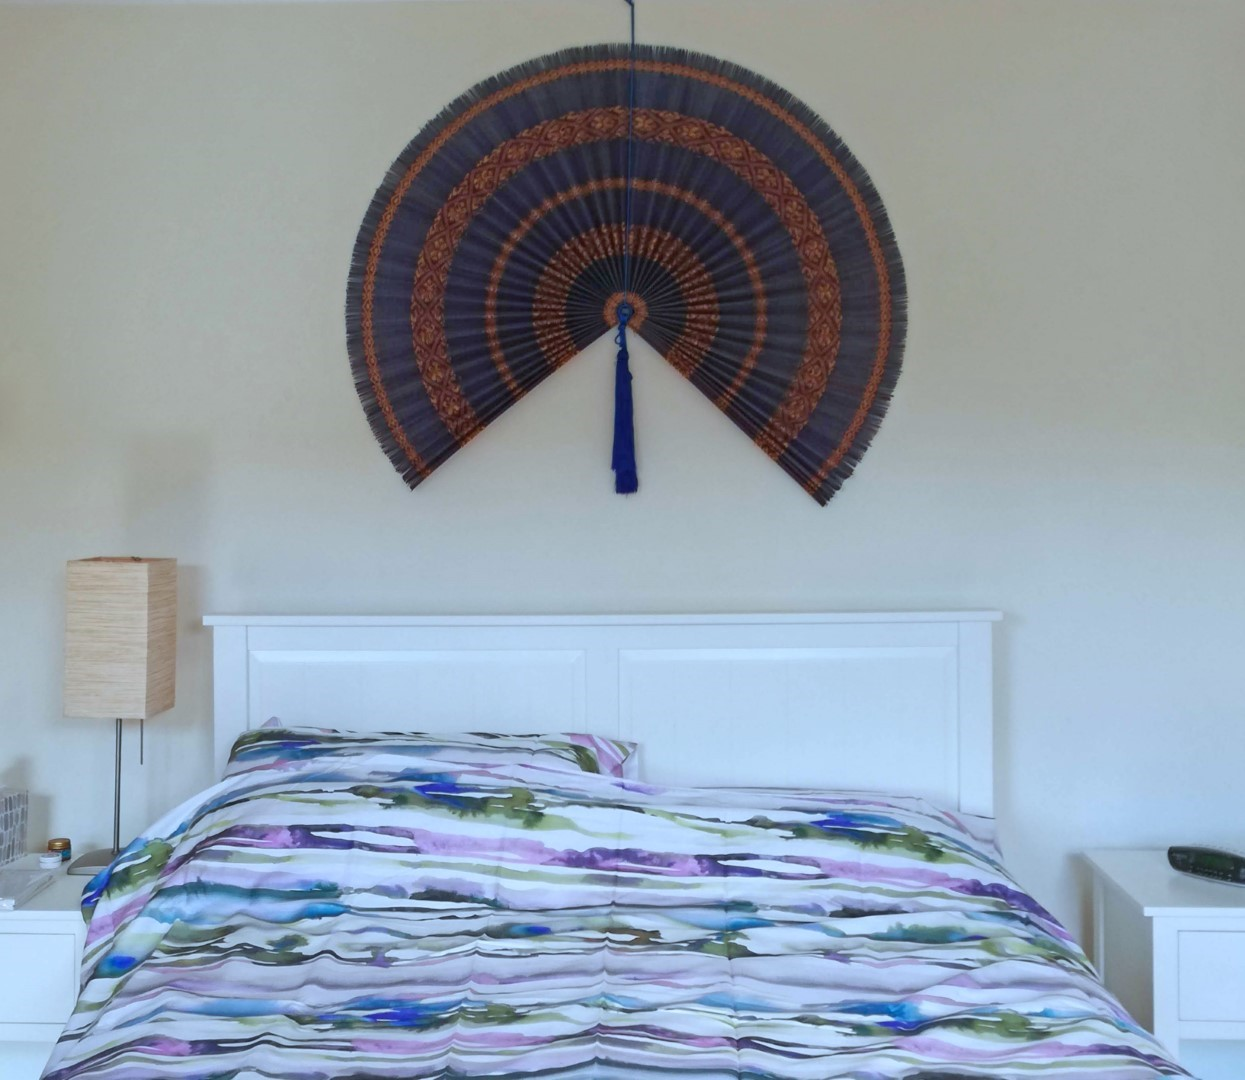 Large fan hung above a bed